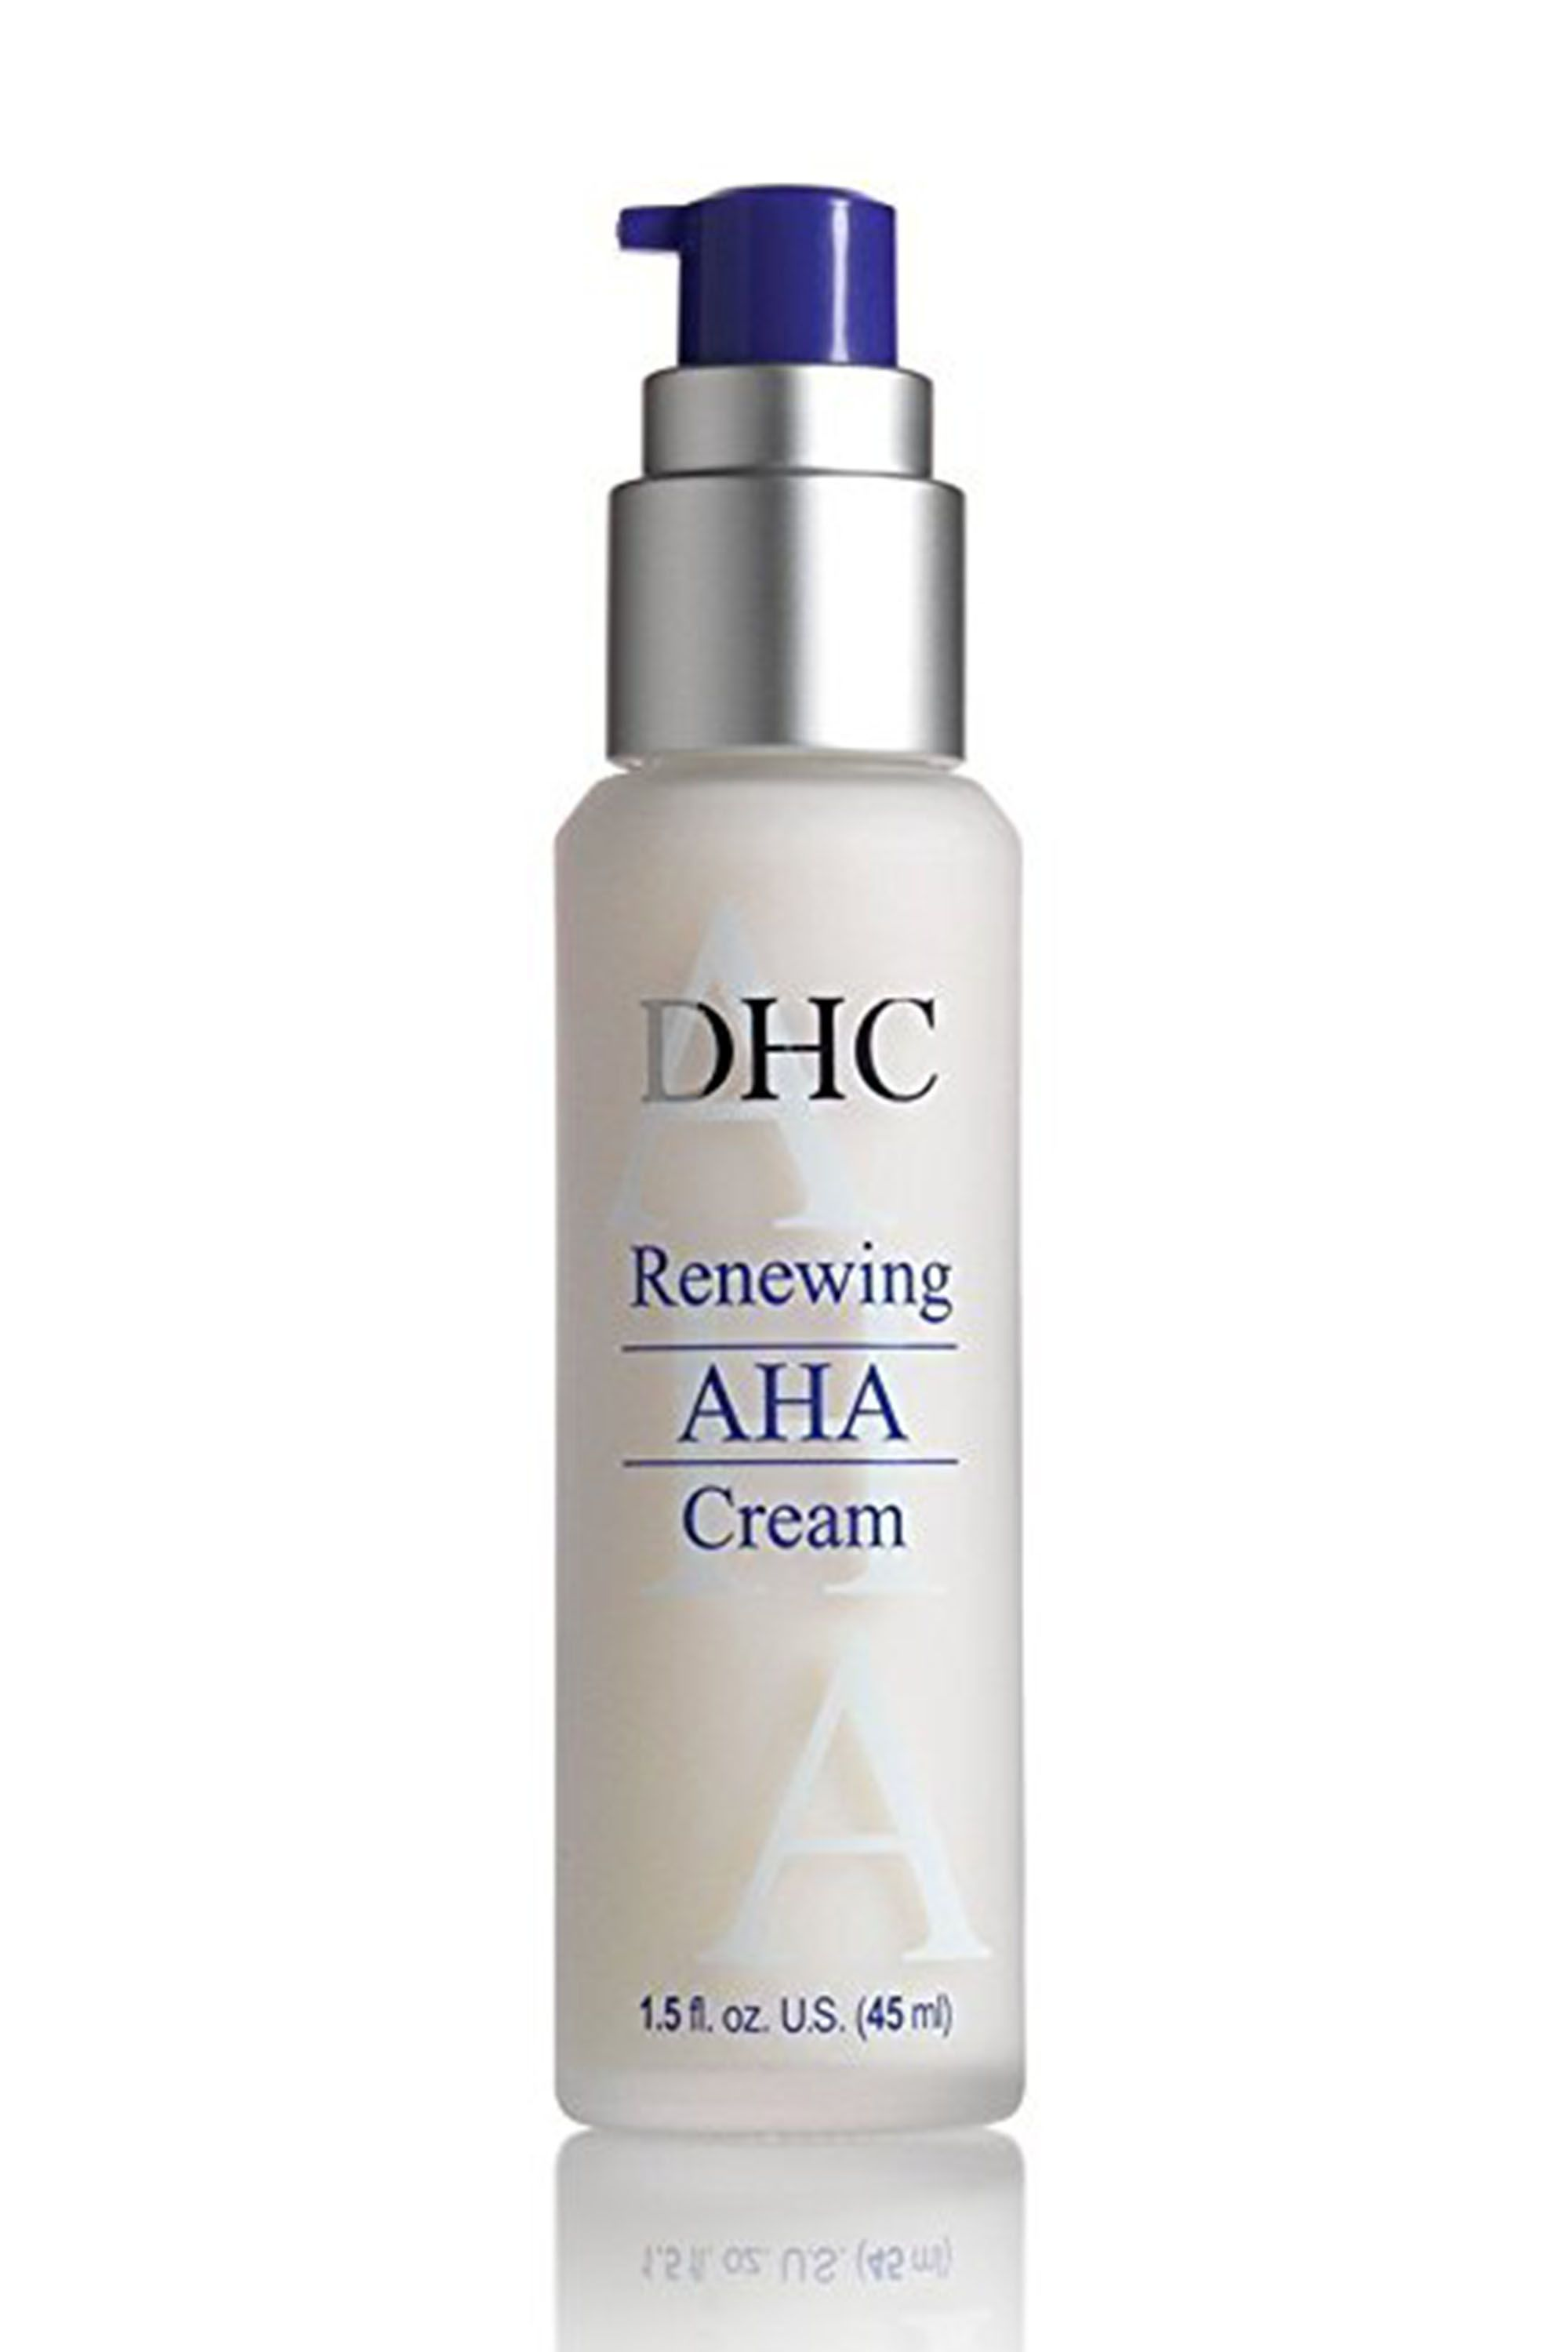 acne scar treatment products